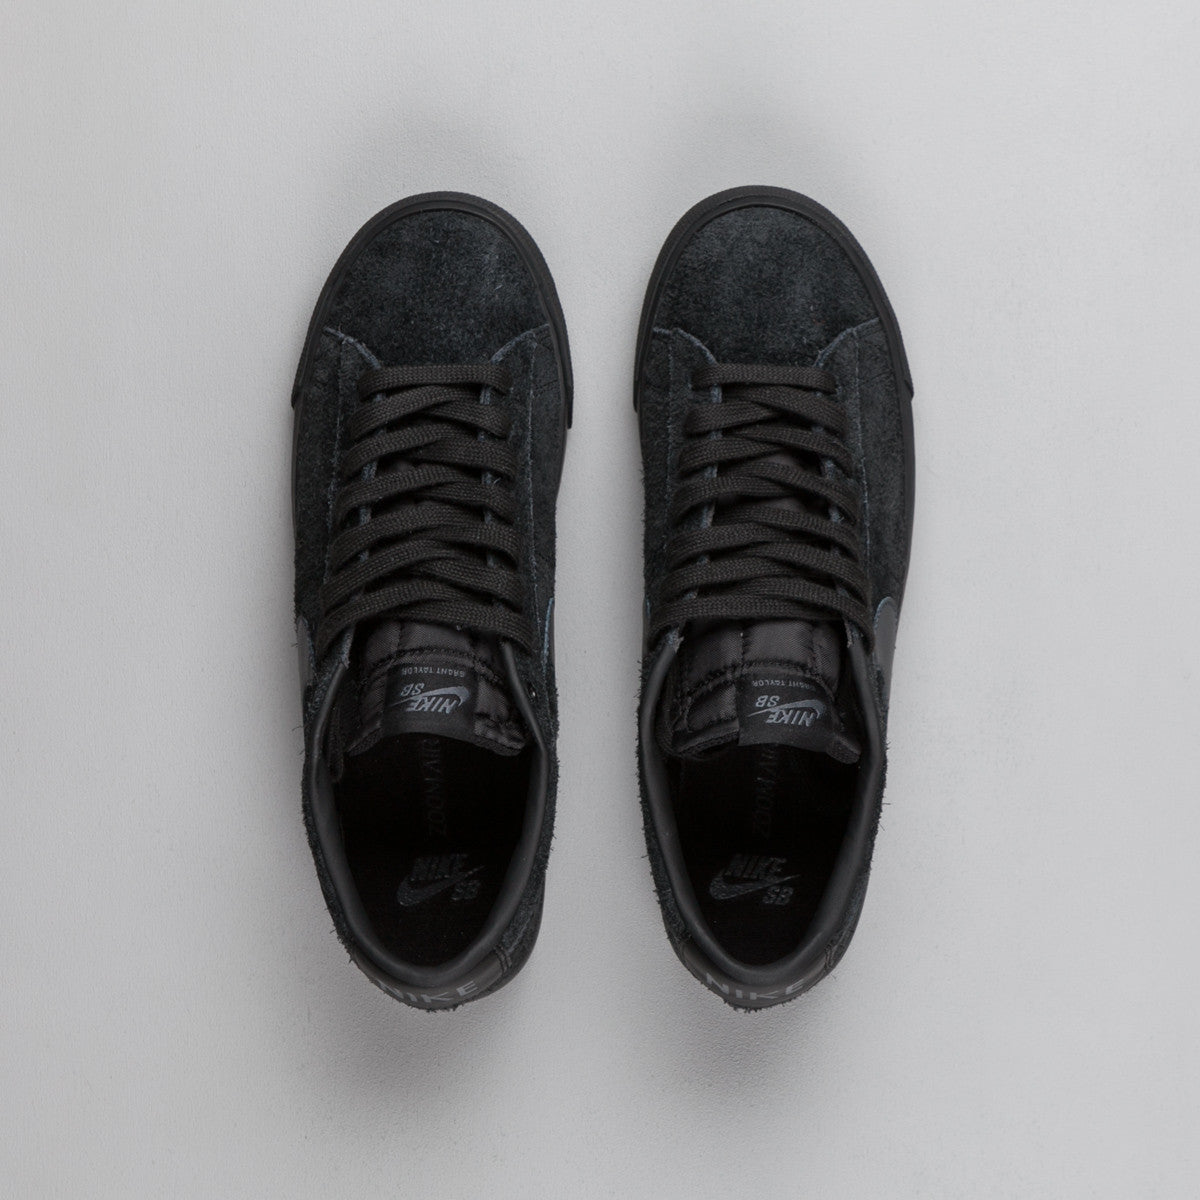 Nike SB Blazer Low GT Shoes - Black / Anthracite